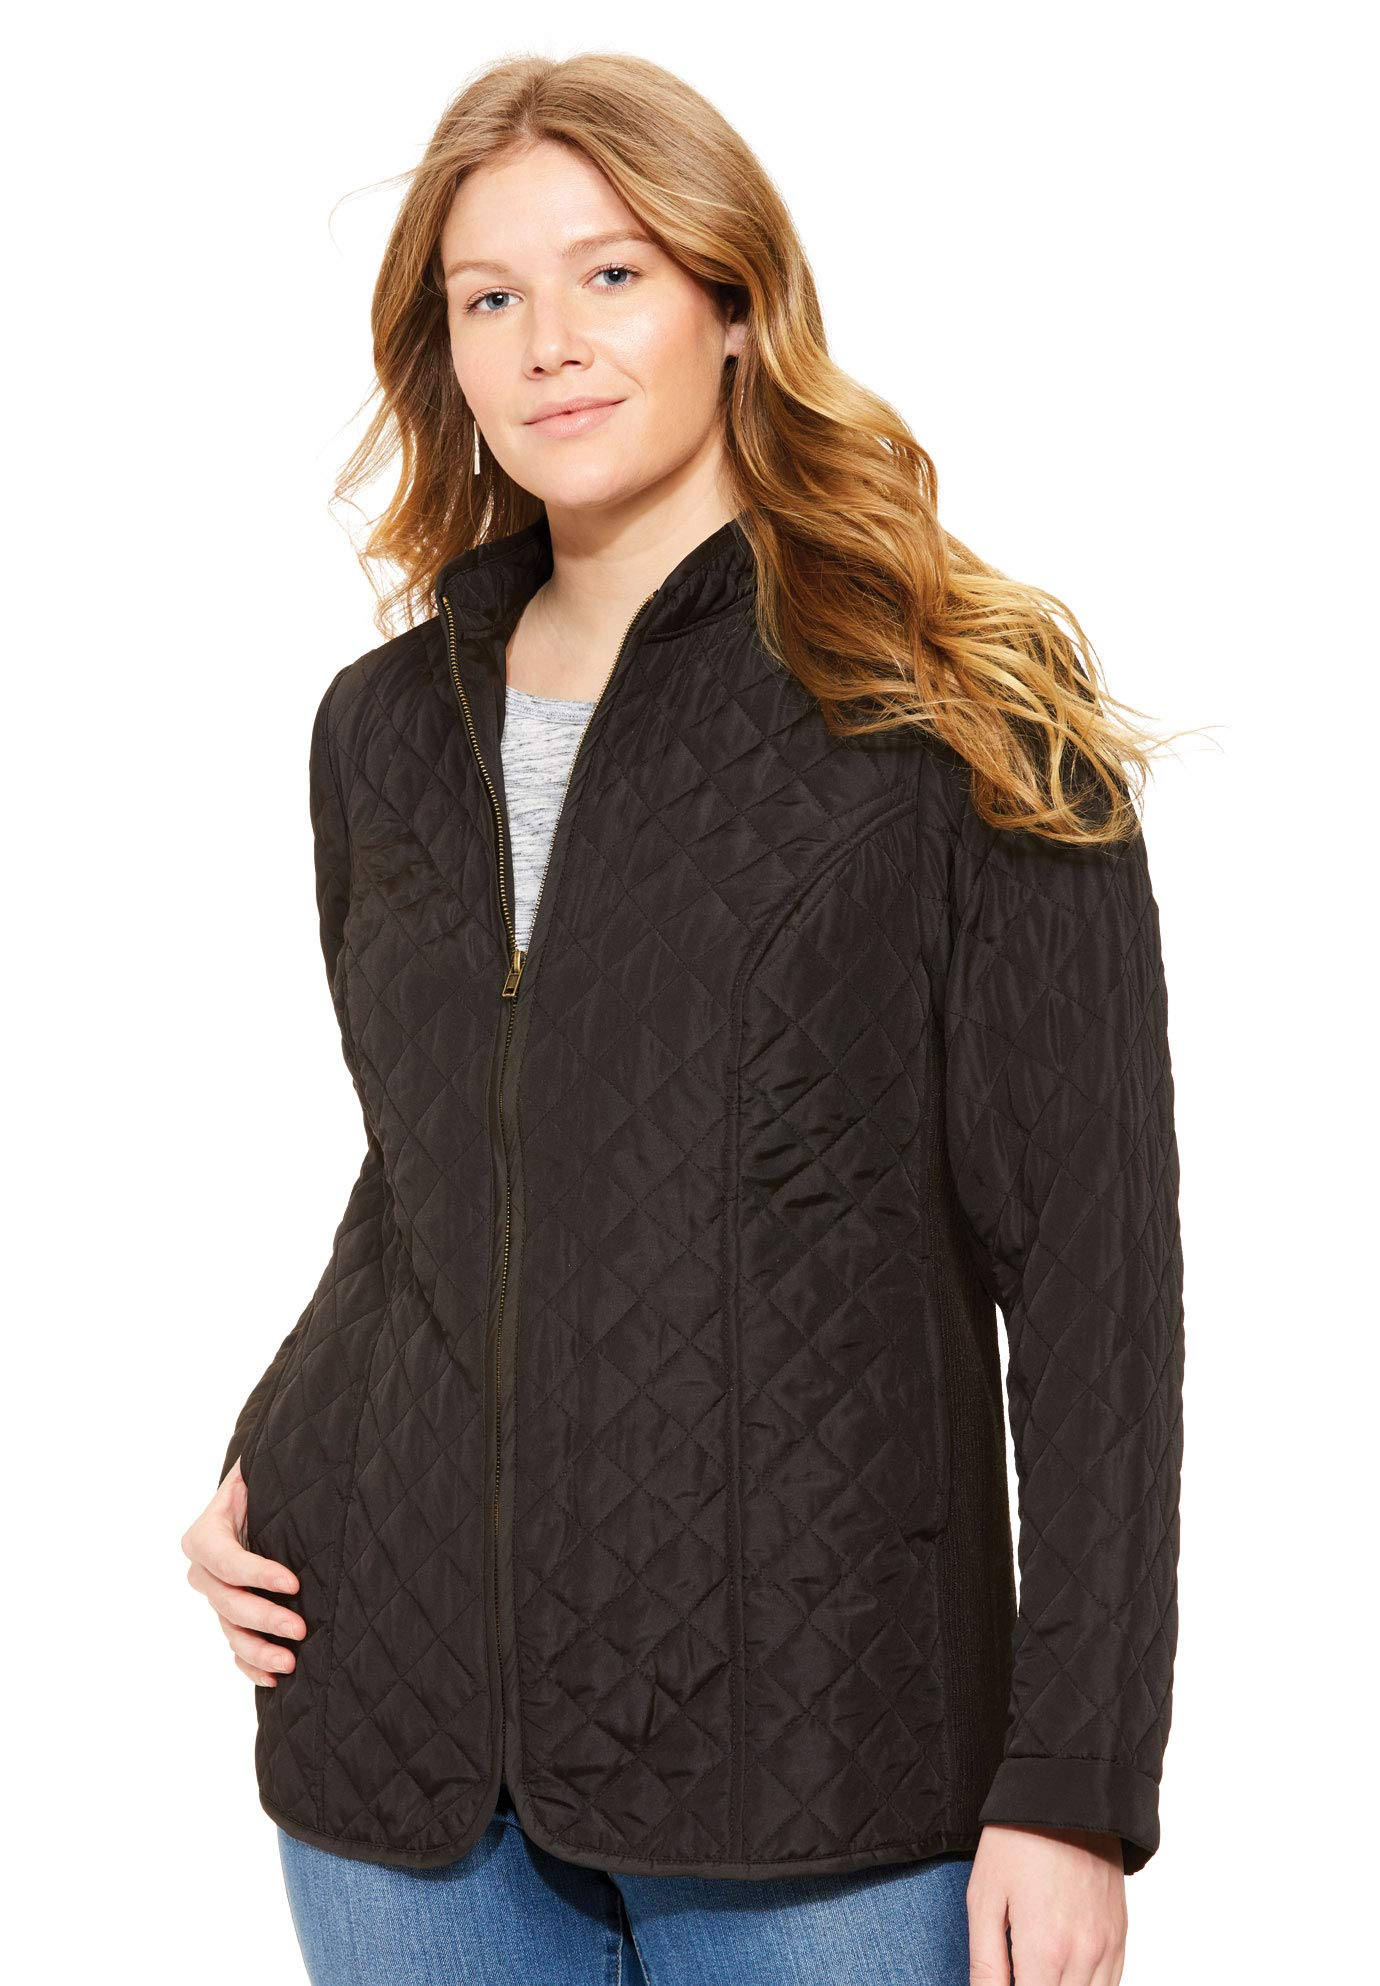 Woman Within Women's Plus Size Zip-Front Quilted Jacket - Black, 3X by Woman Within